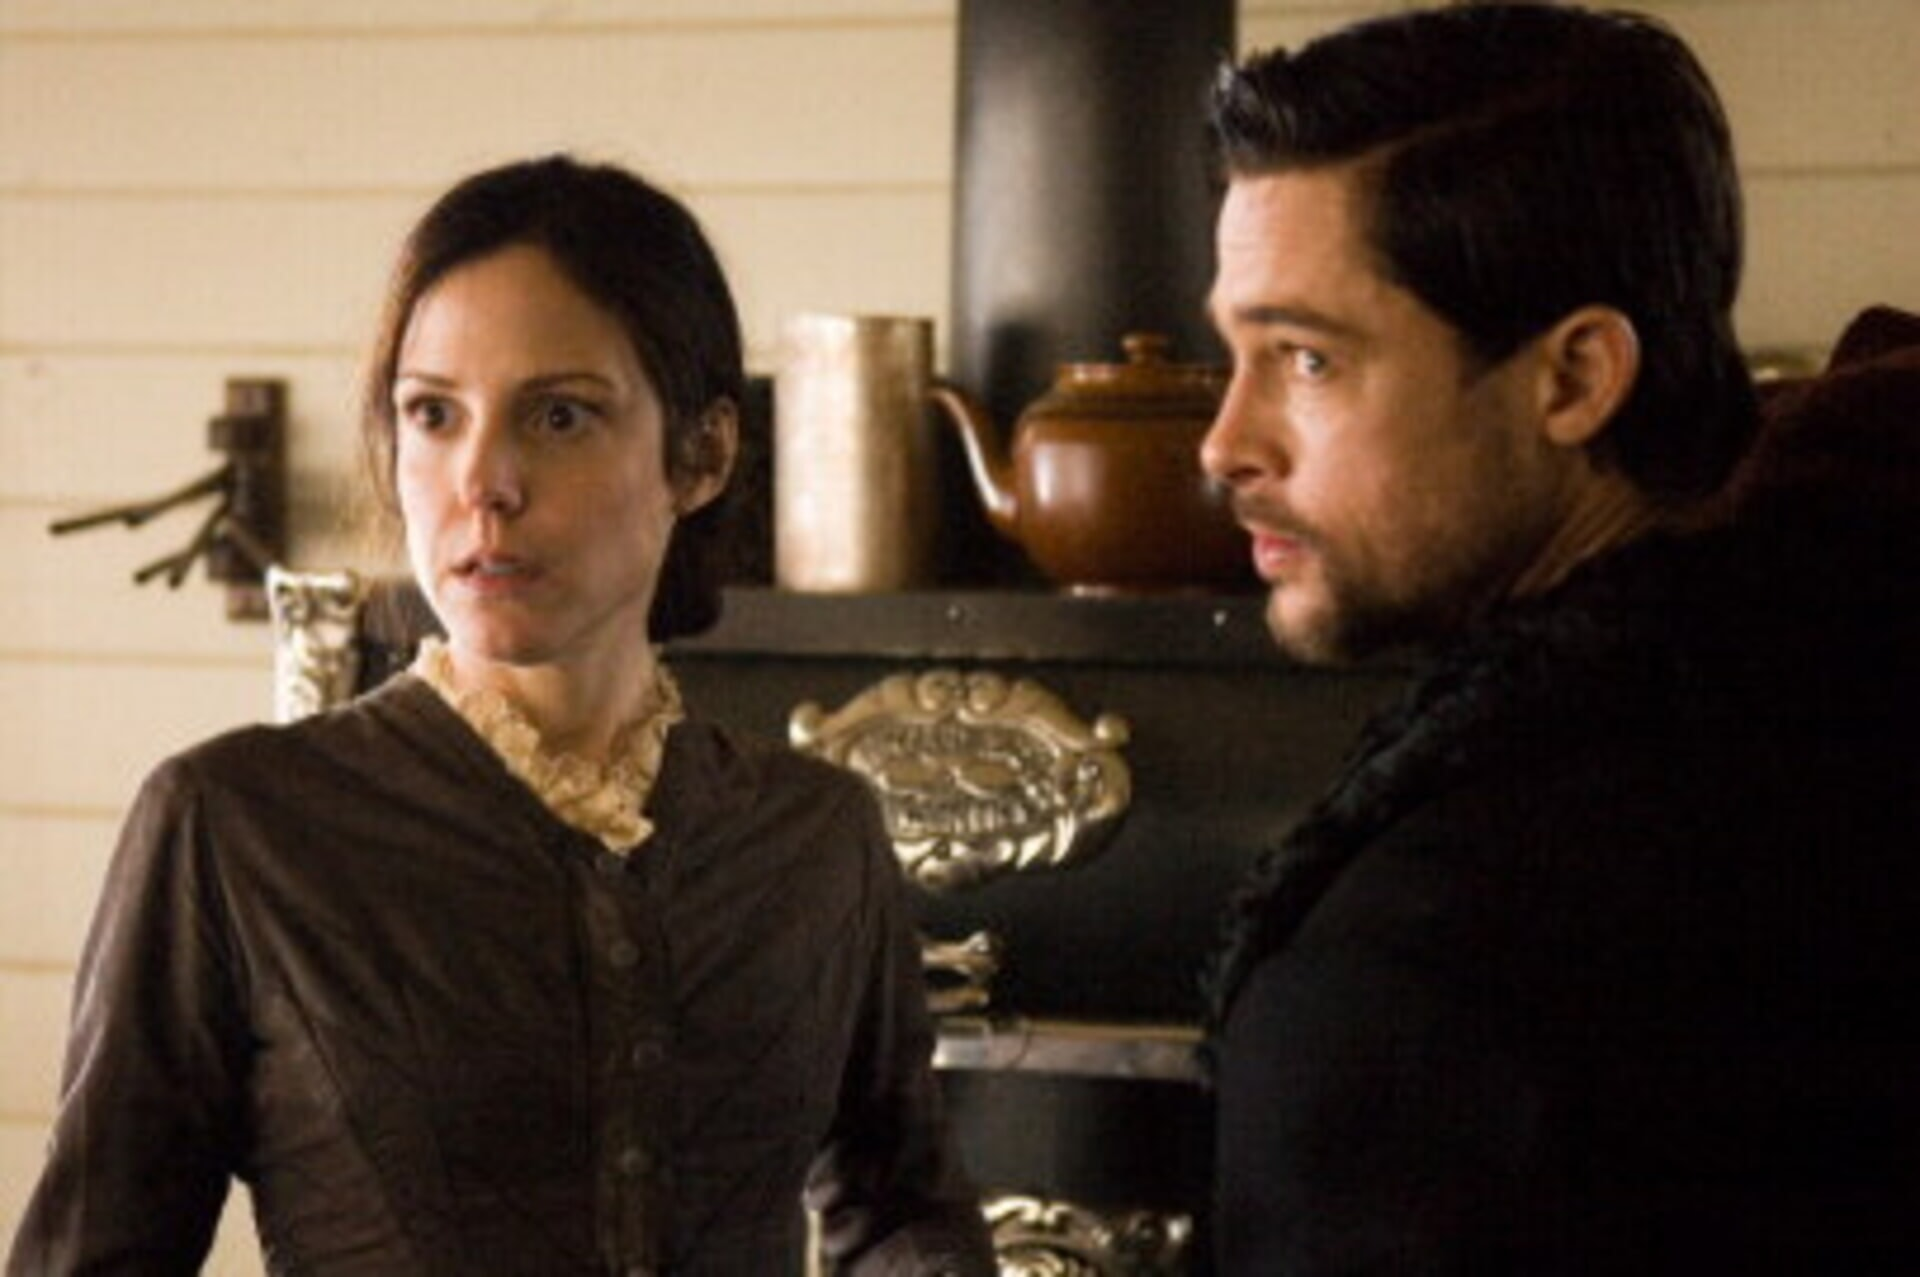 The Assassination of Jesse James by the Coward Robert Ford - Image 20